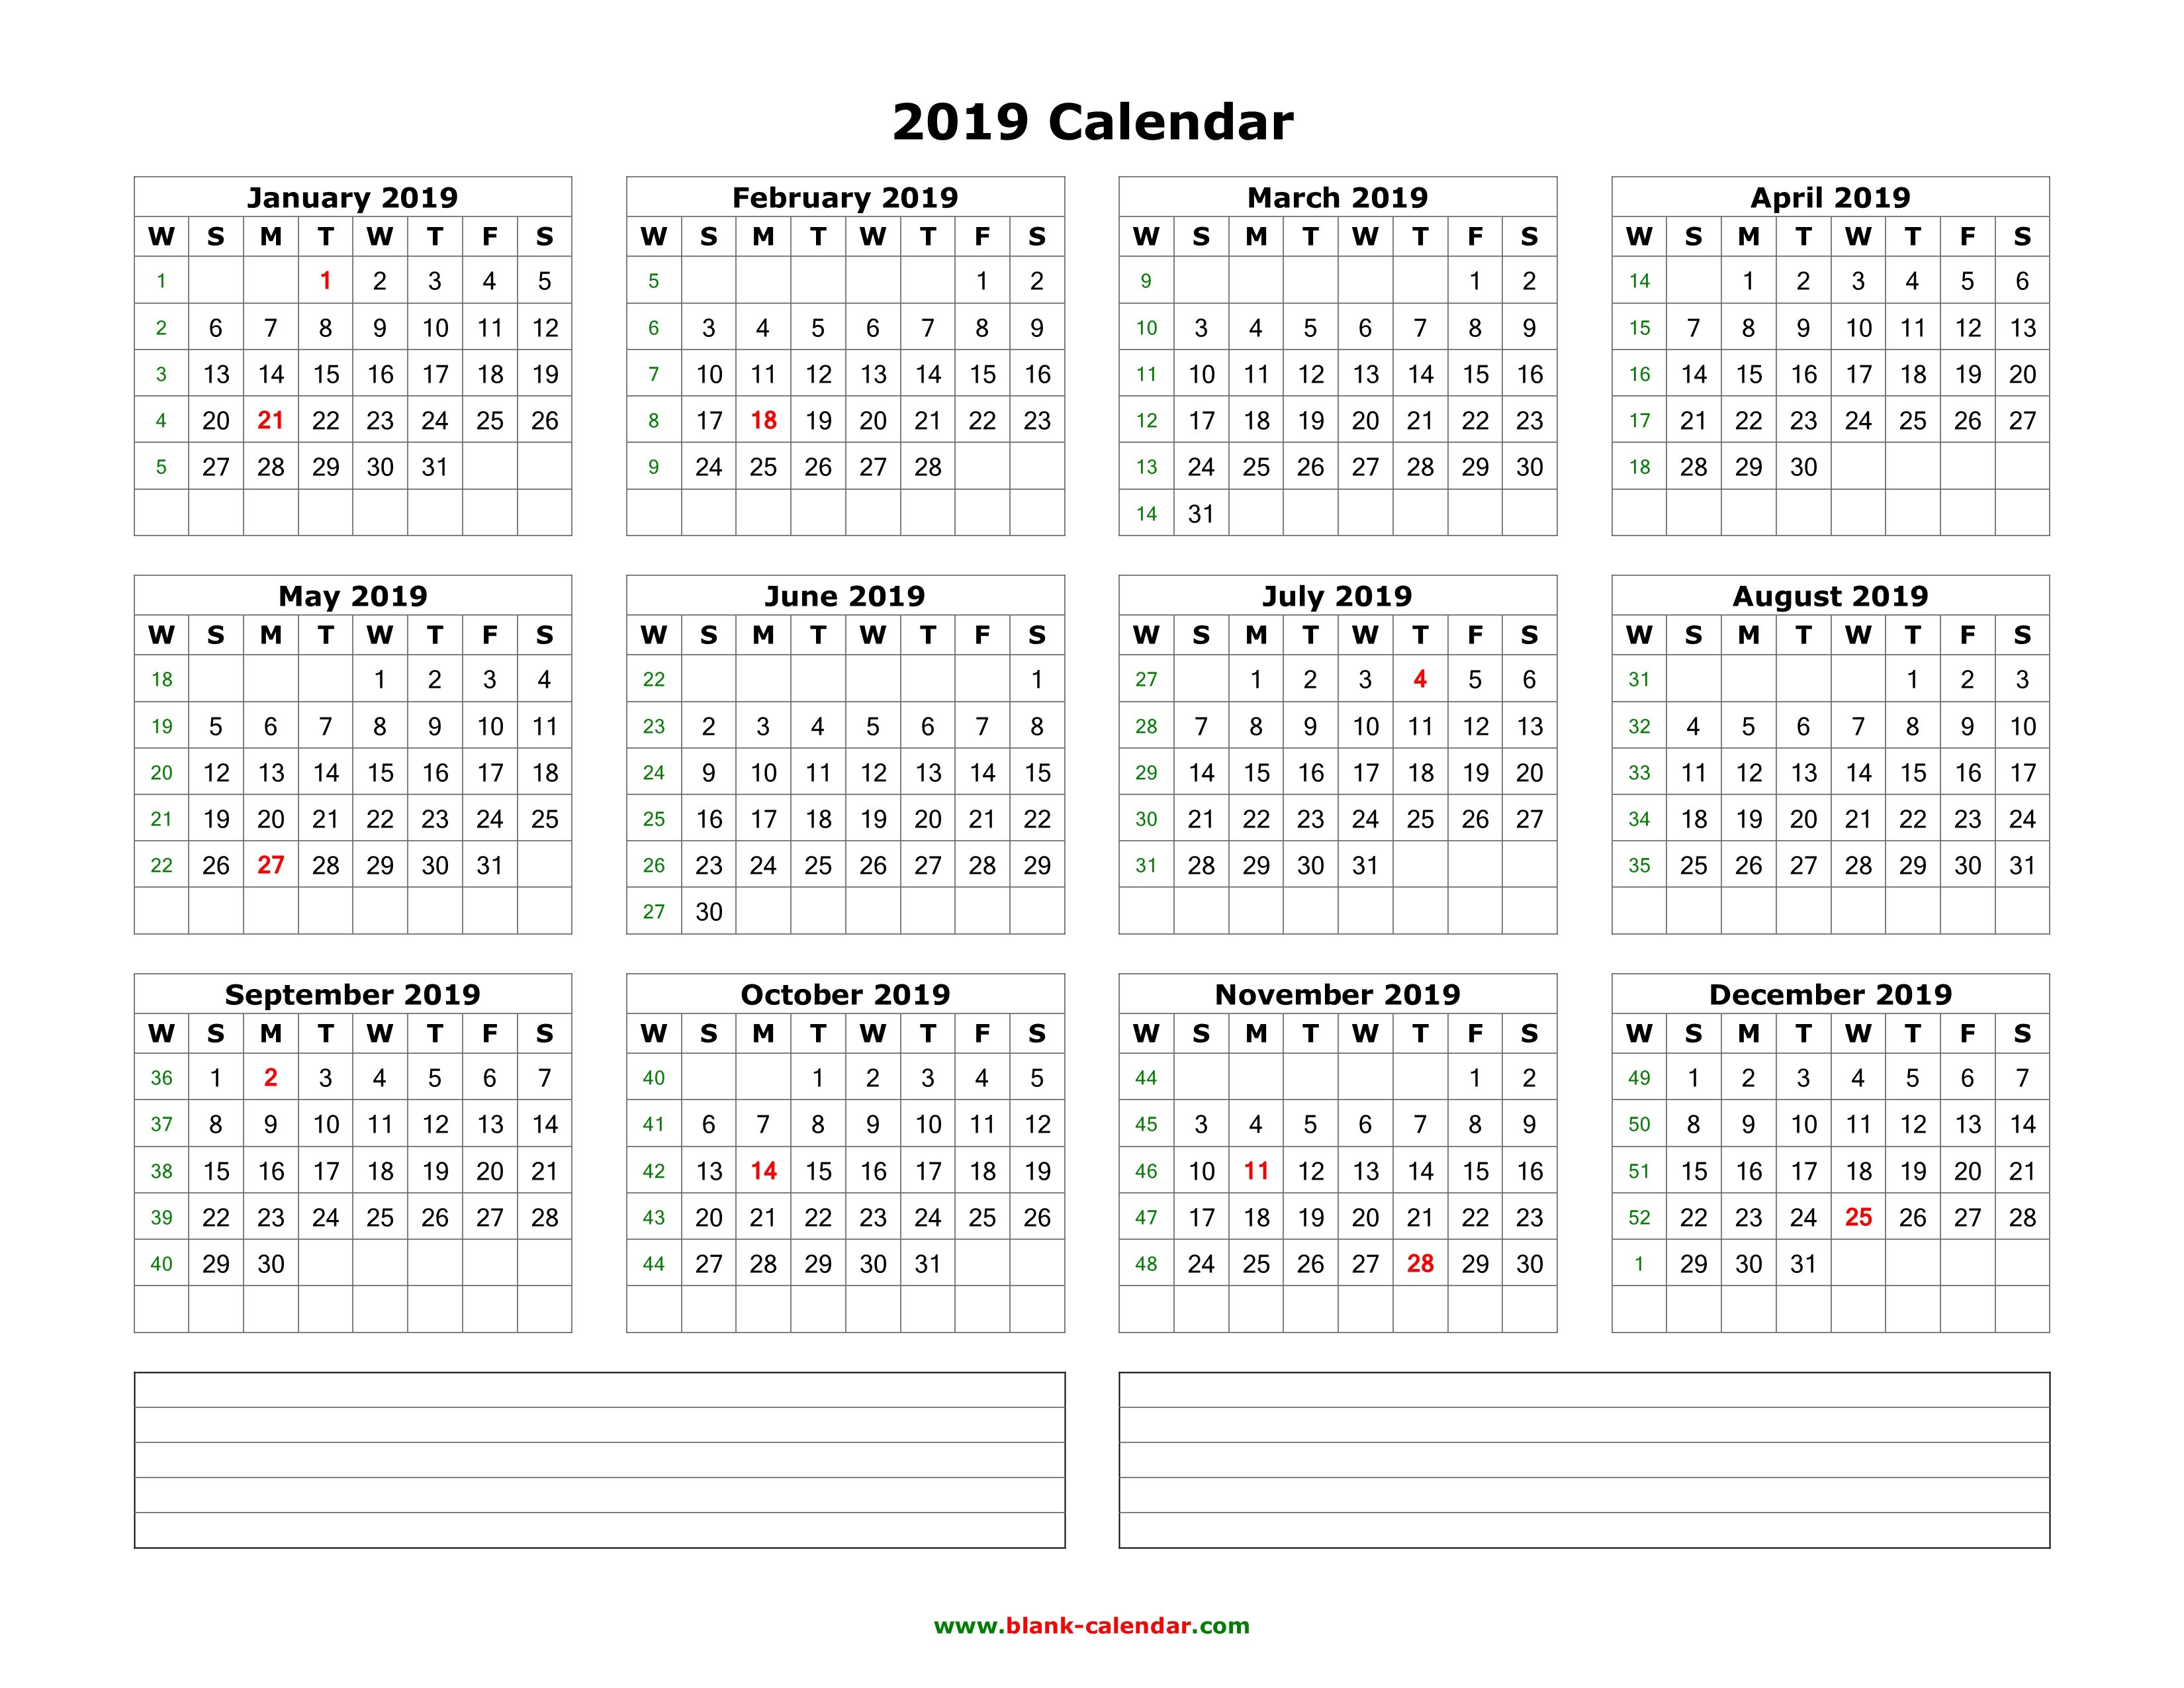 Download Blank Calendar 2019 With Space For Notes (12 Months On One Calendar 2019 Landscape